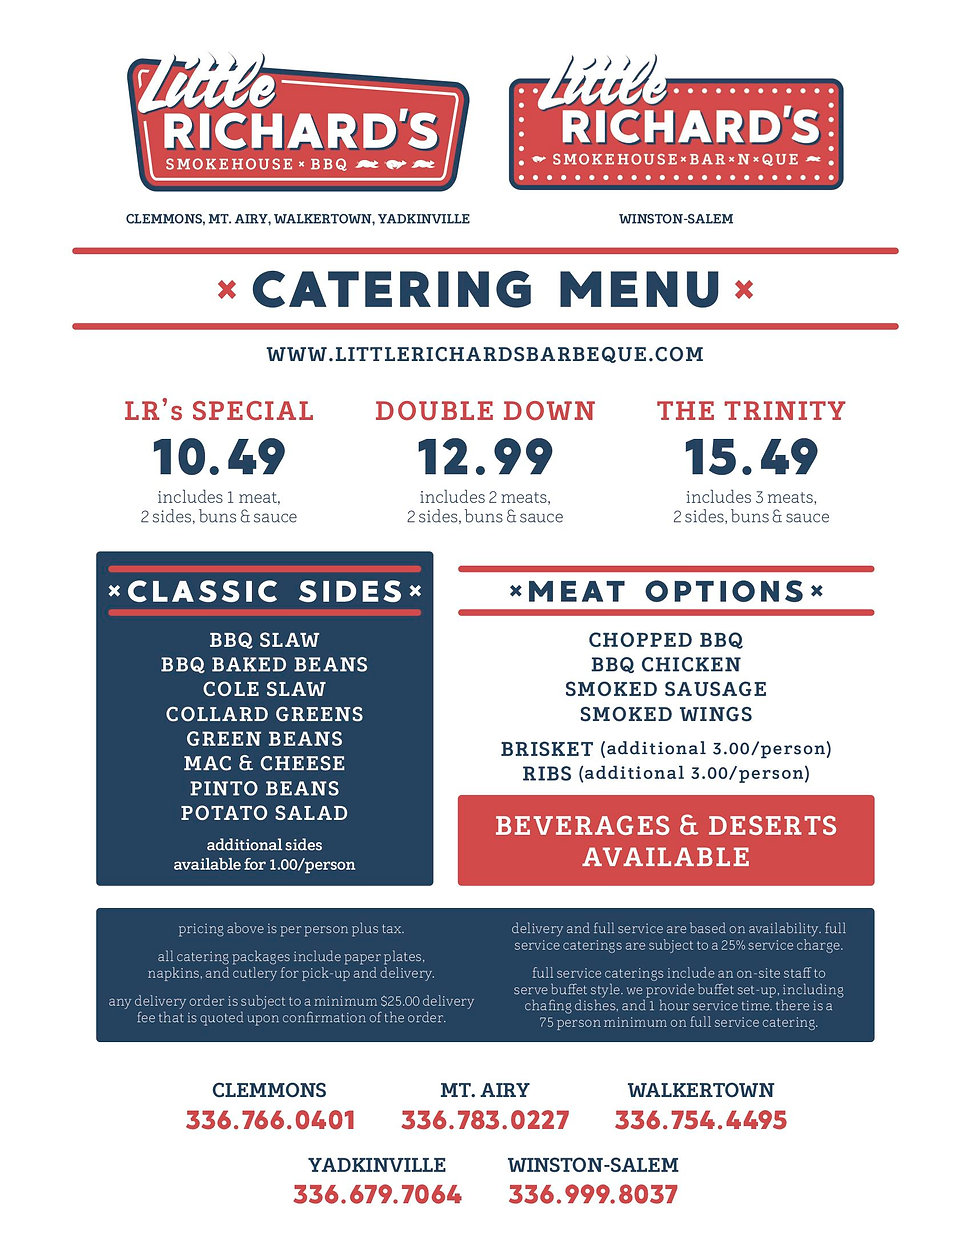 Little Richard's_Catering Menu_8.5x11_02